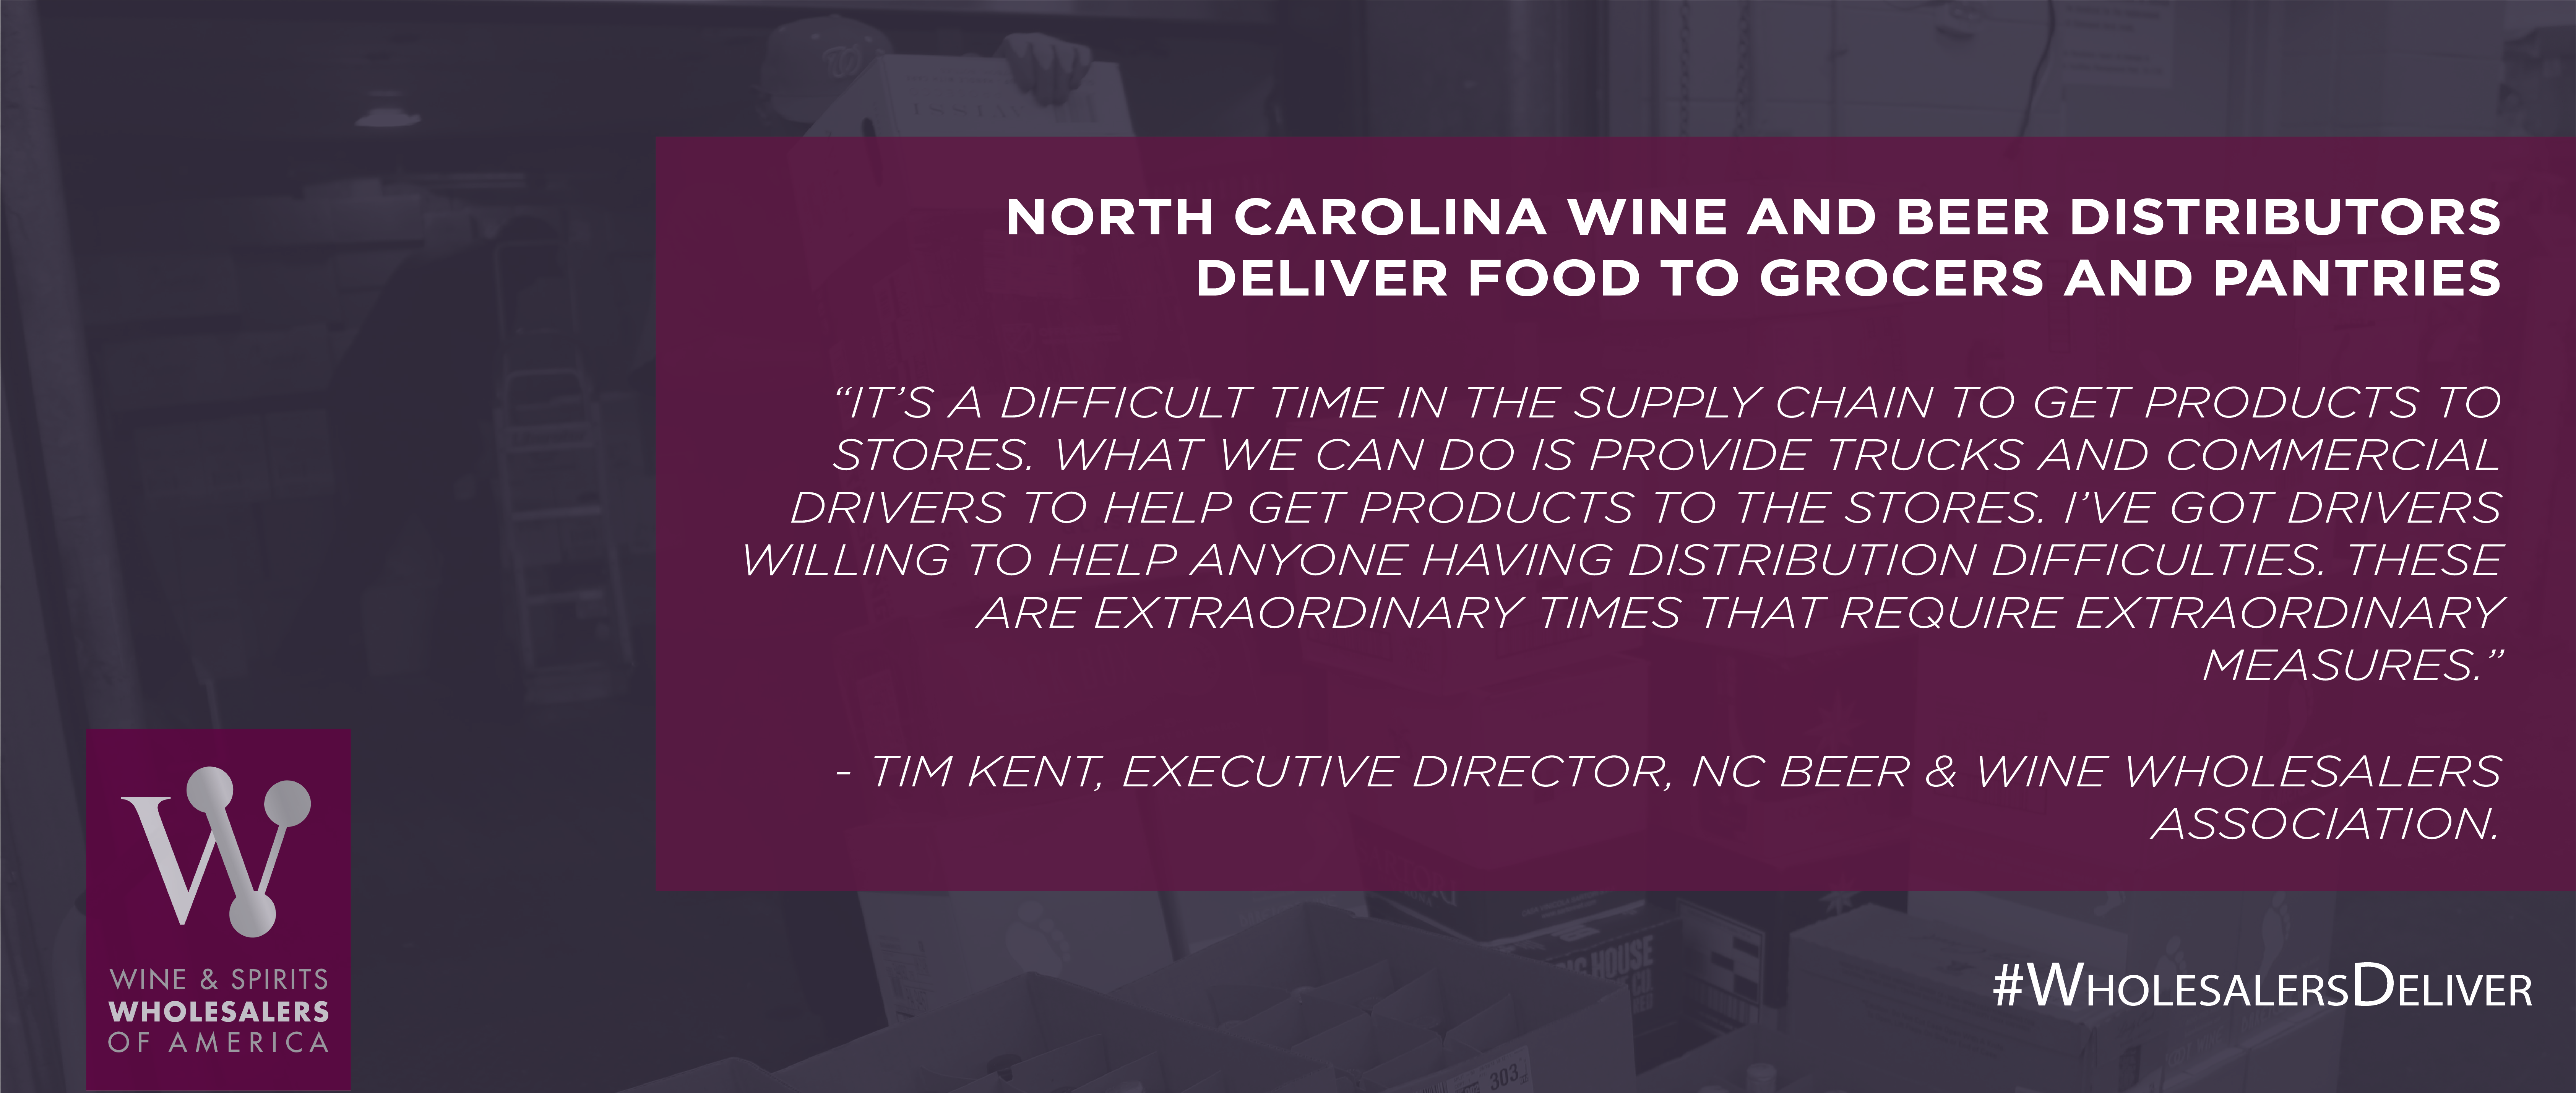 NC Beer and Wine Wholesalers Deliver